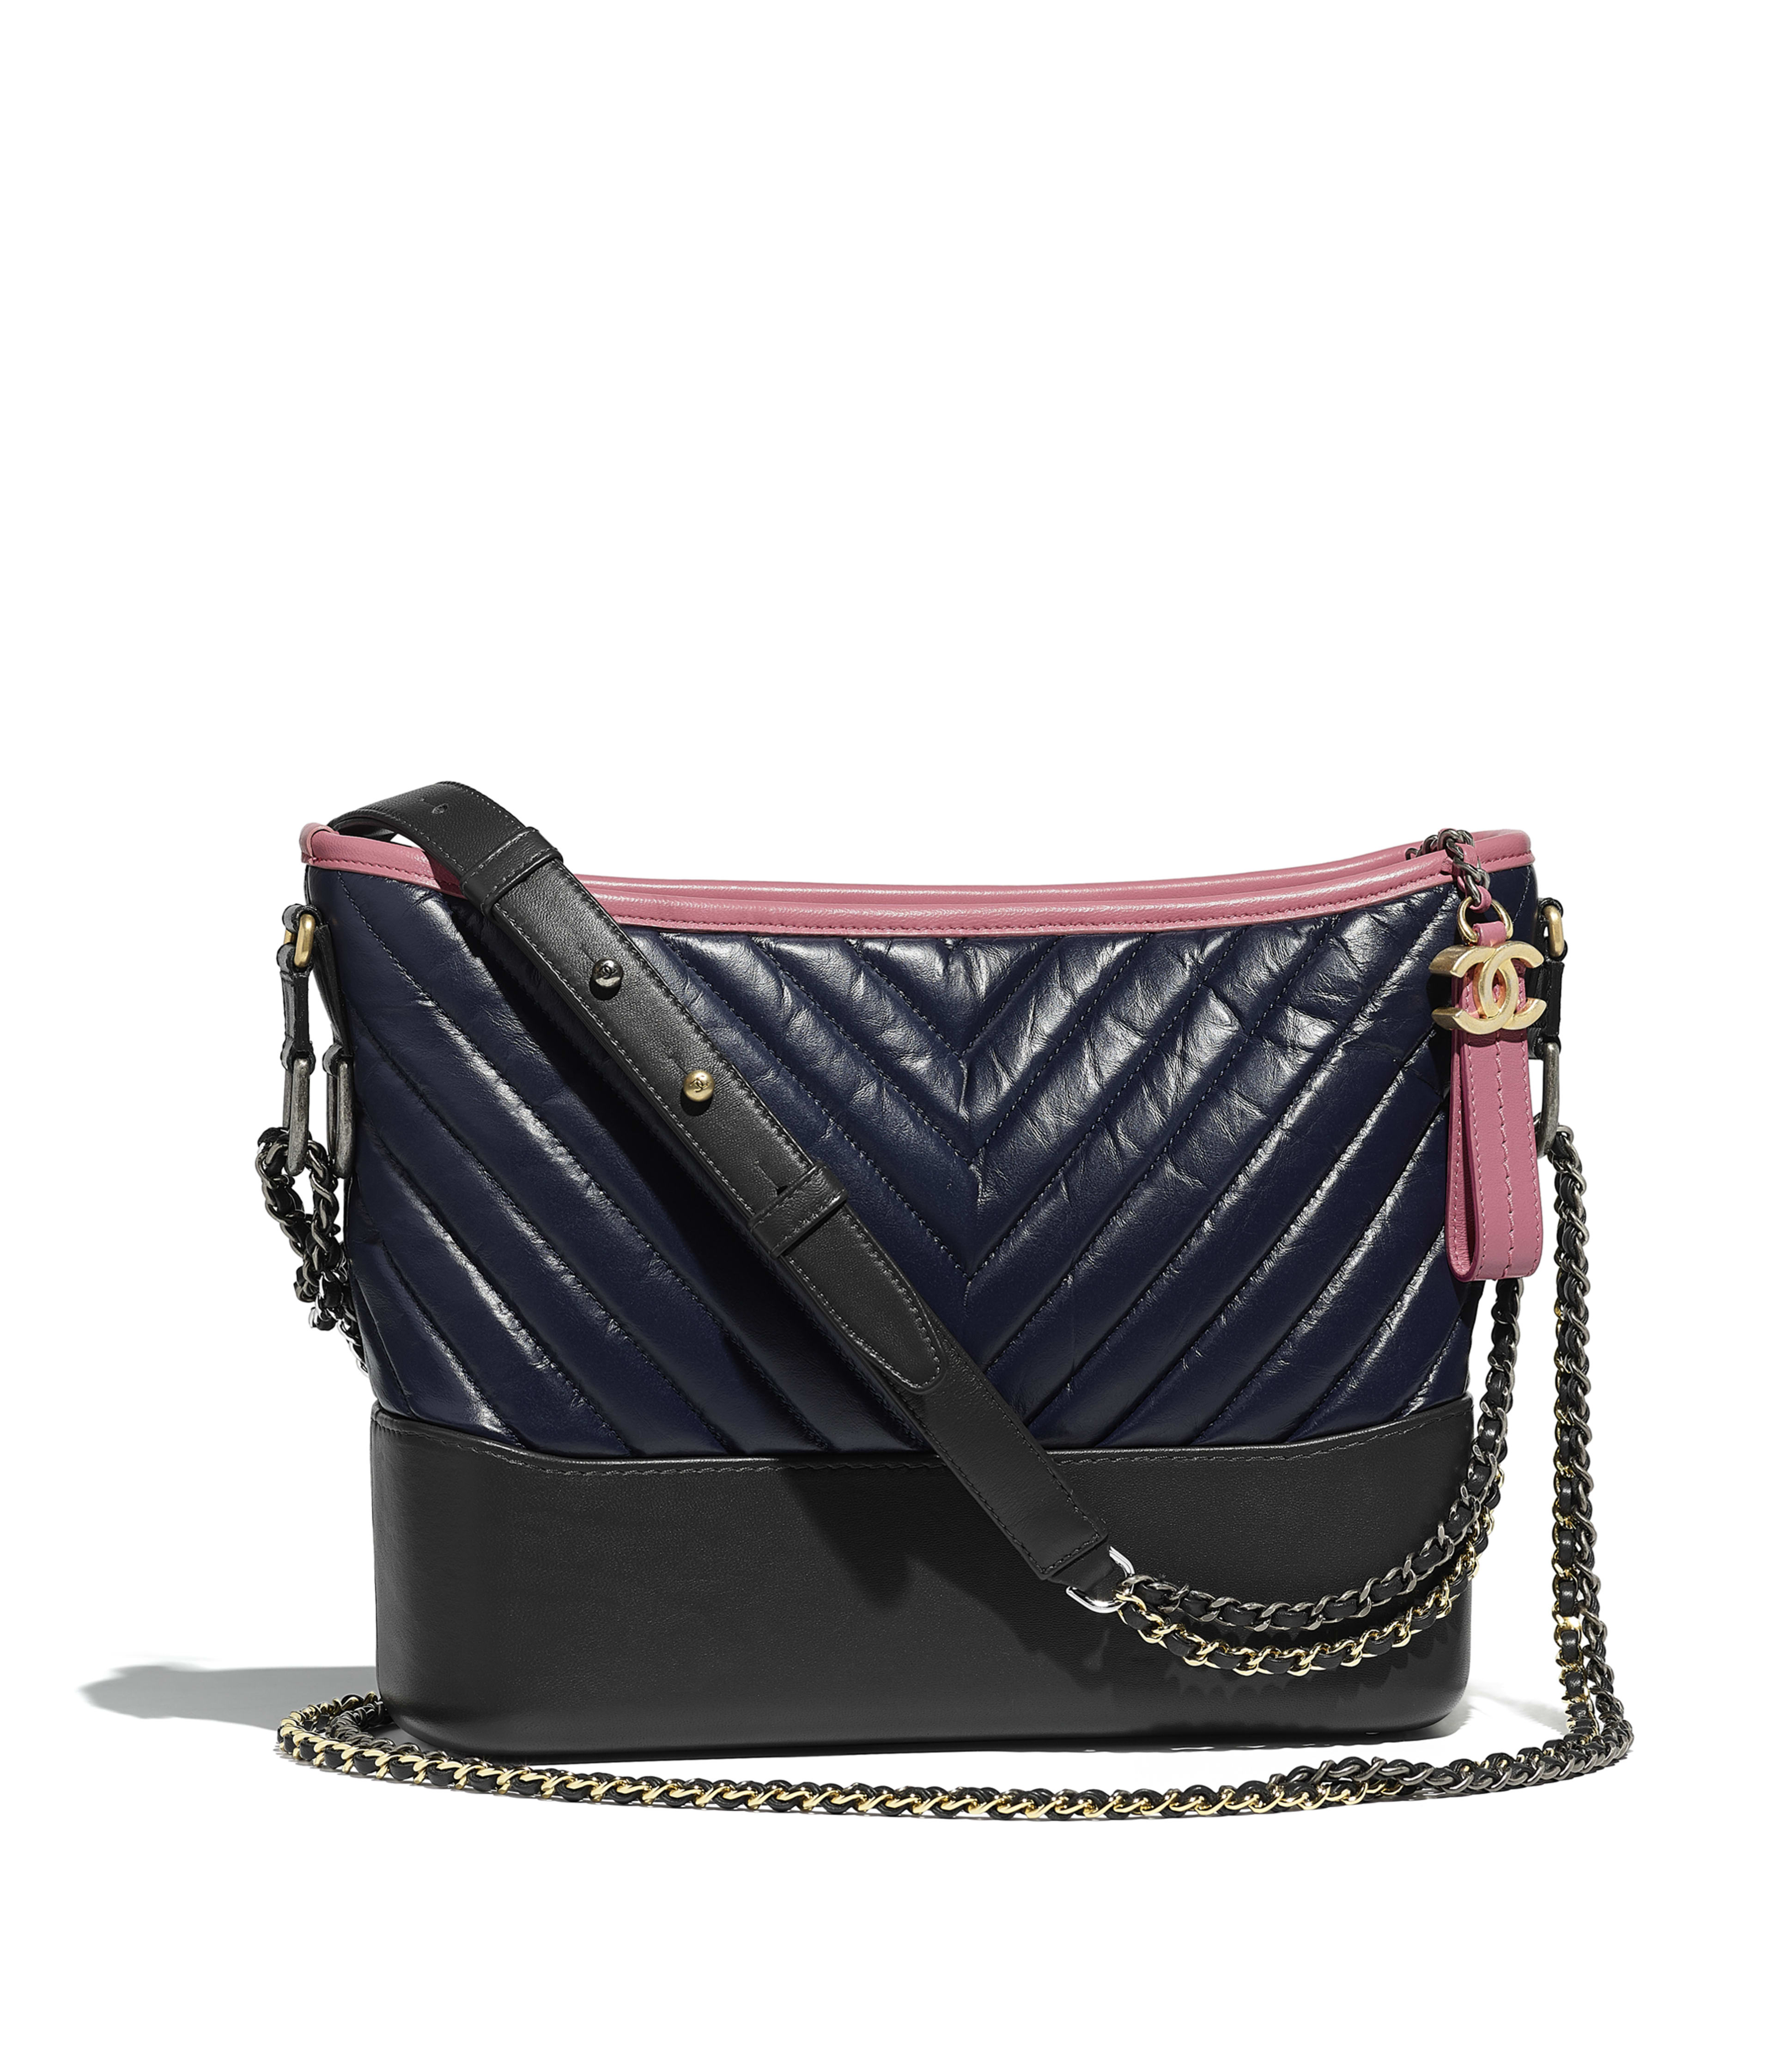 Chanel S Gabrielle Hobo Bag Aged Calfskin Smooth Silver Tone Gold Metal Navy Blue Charcoal Pink Ref A93824y83983k1165